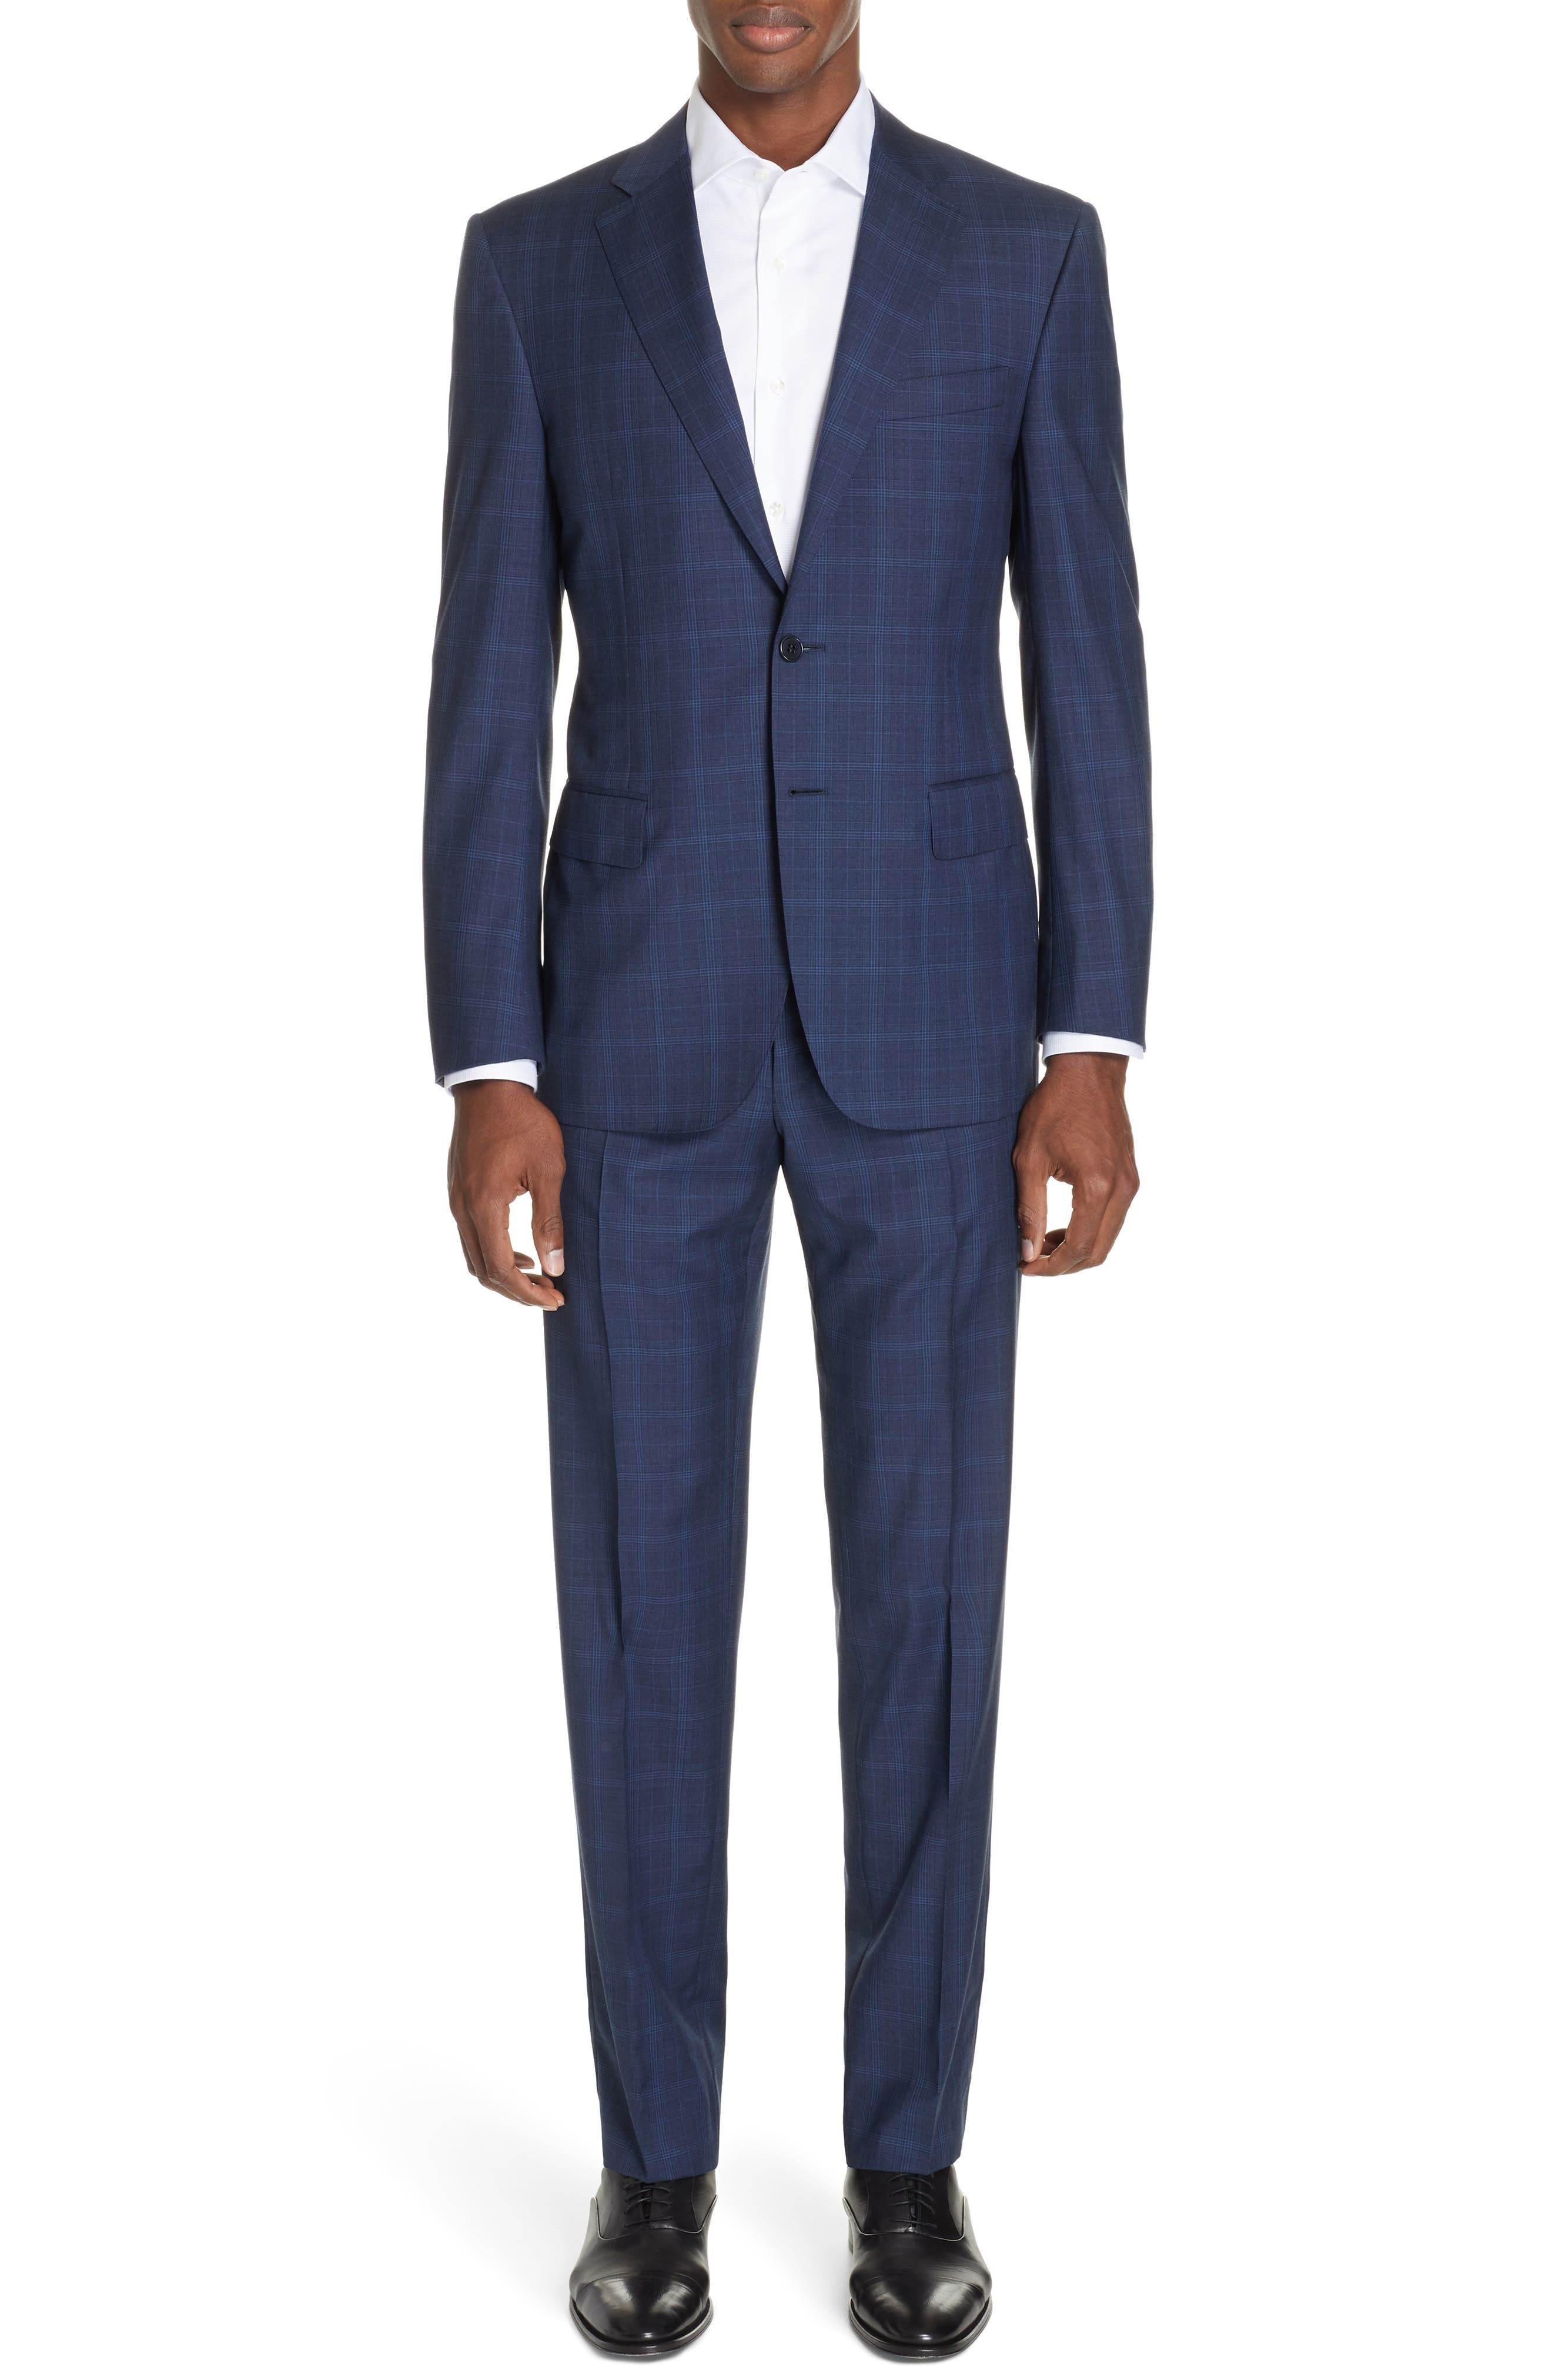 CANALI, Sienna Classic Fit Plaid Wool Suit, Main thumbnail 1, color, NAVY